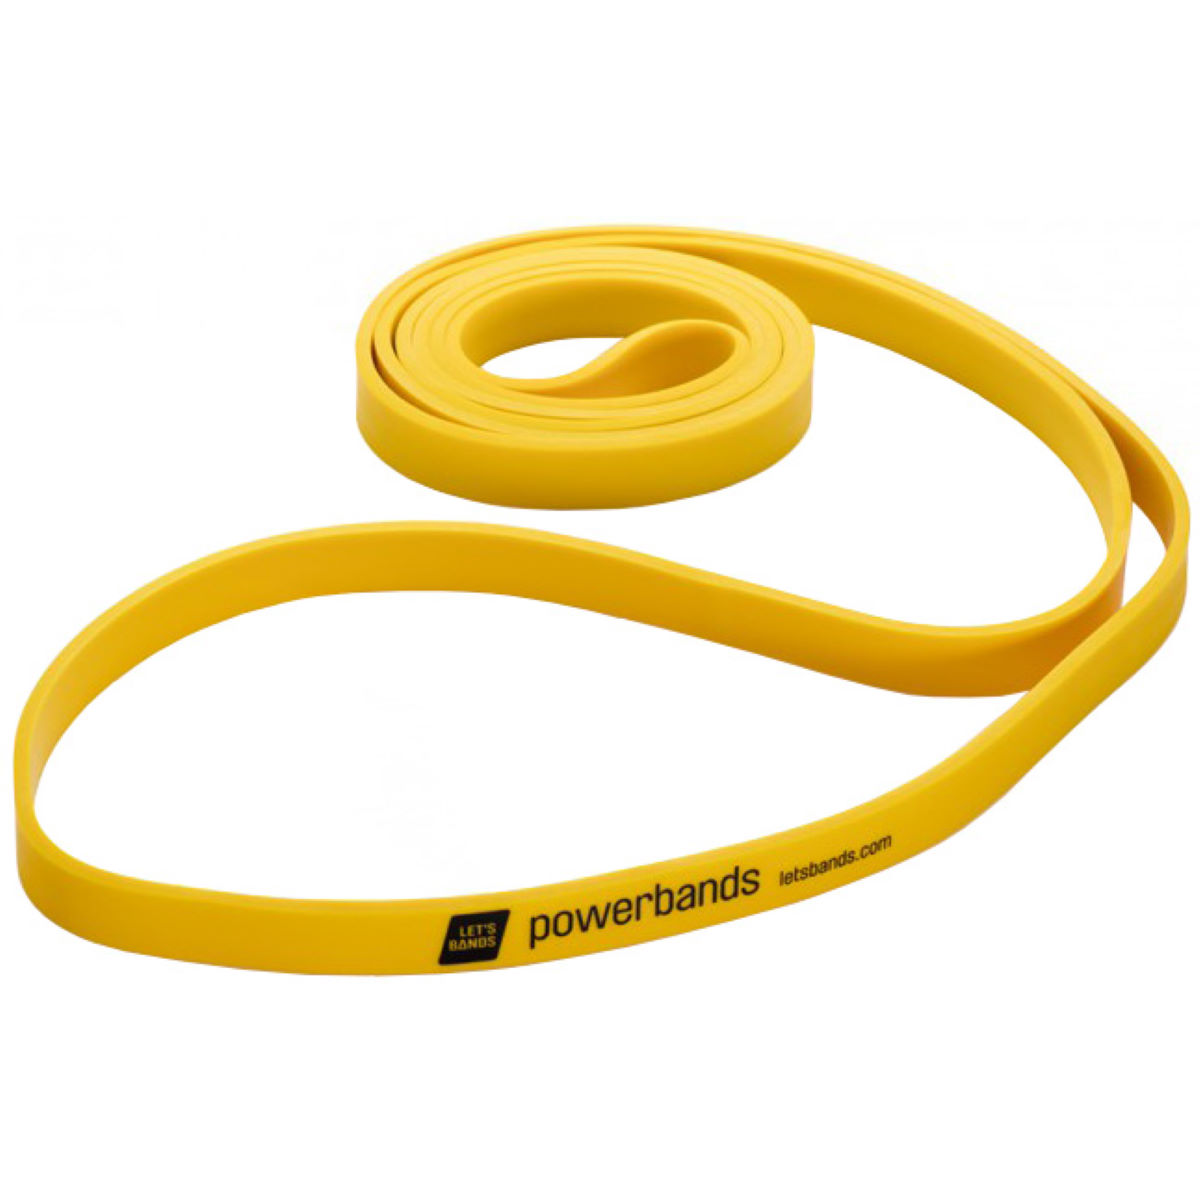 Lets Bands Powerband Max Light - Yellow - Yellow 100 X 1.5 Cm